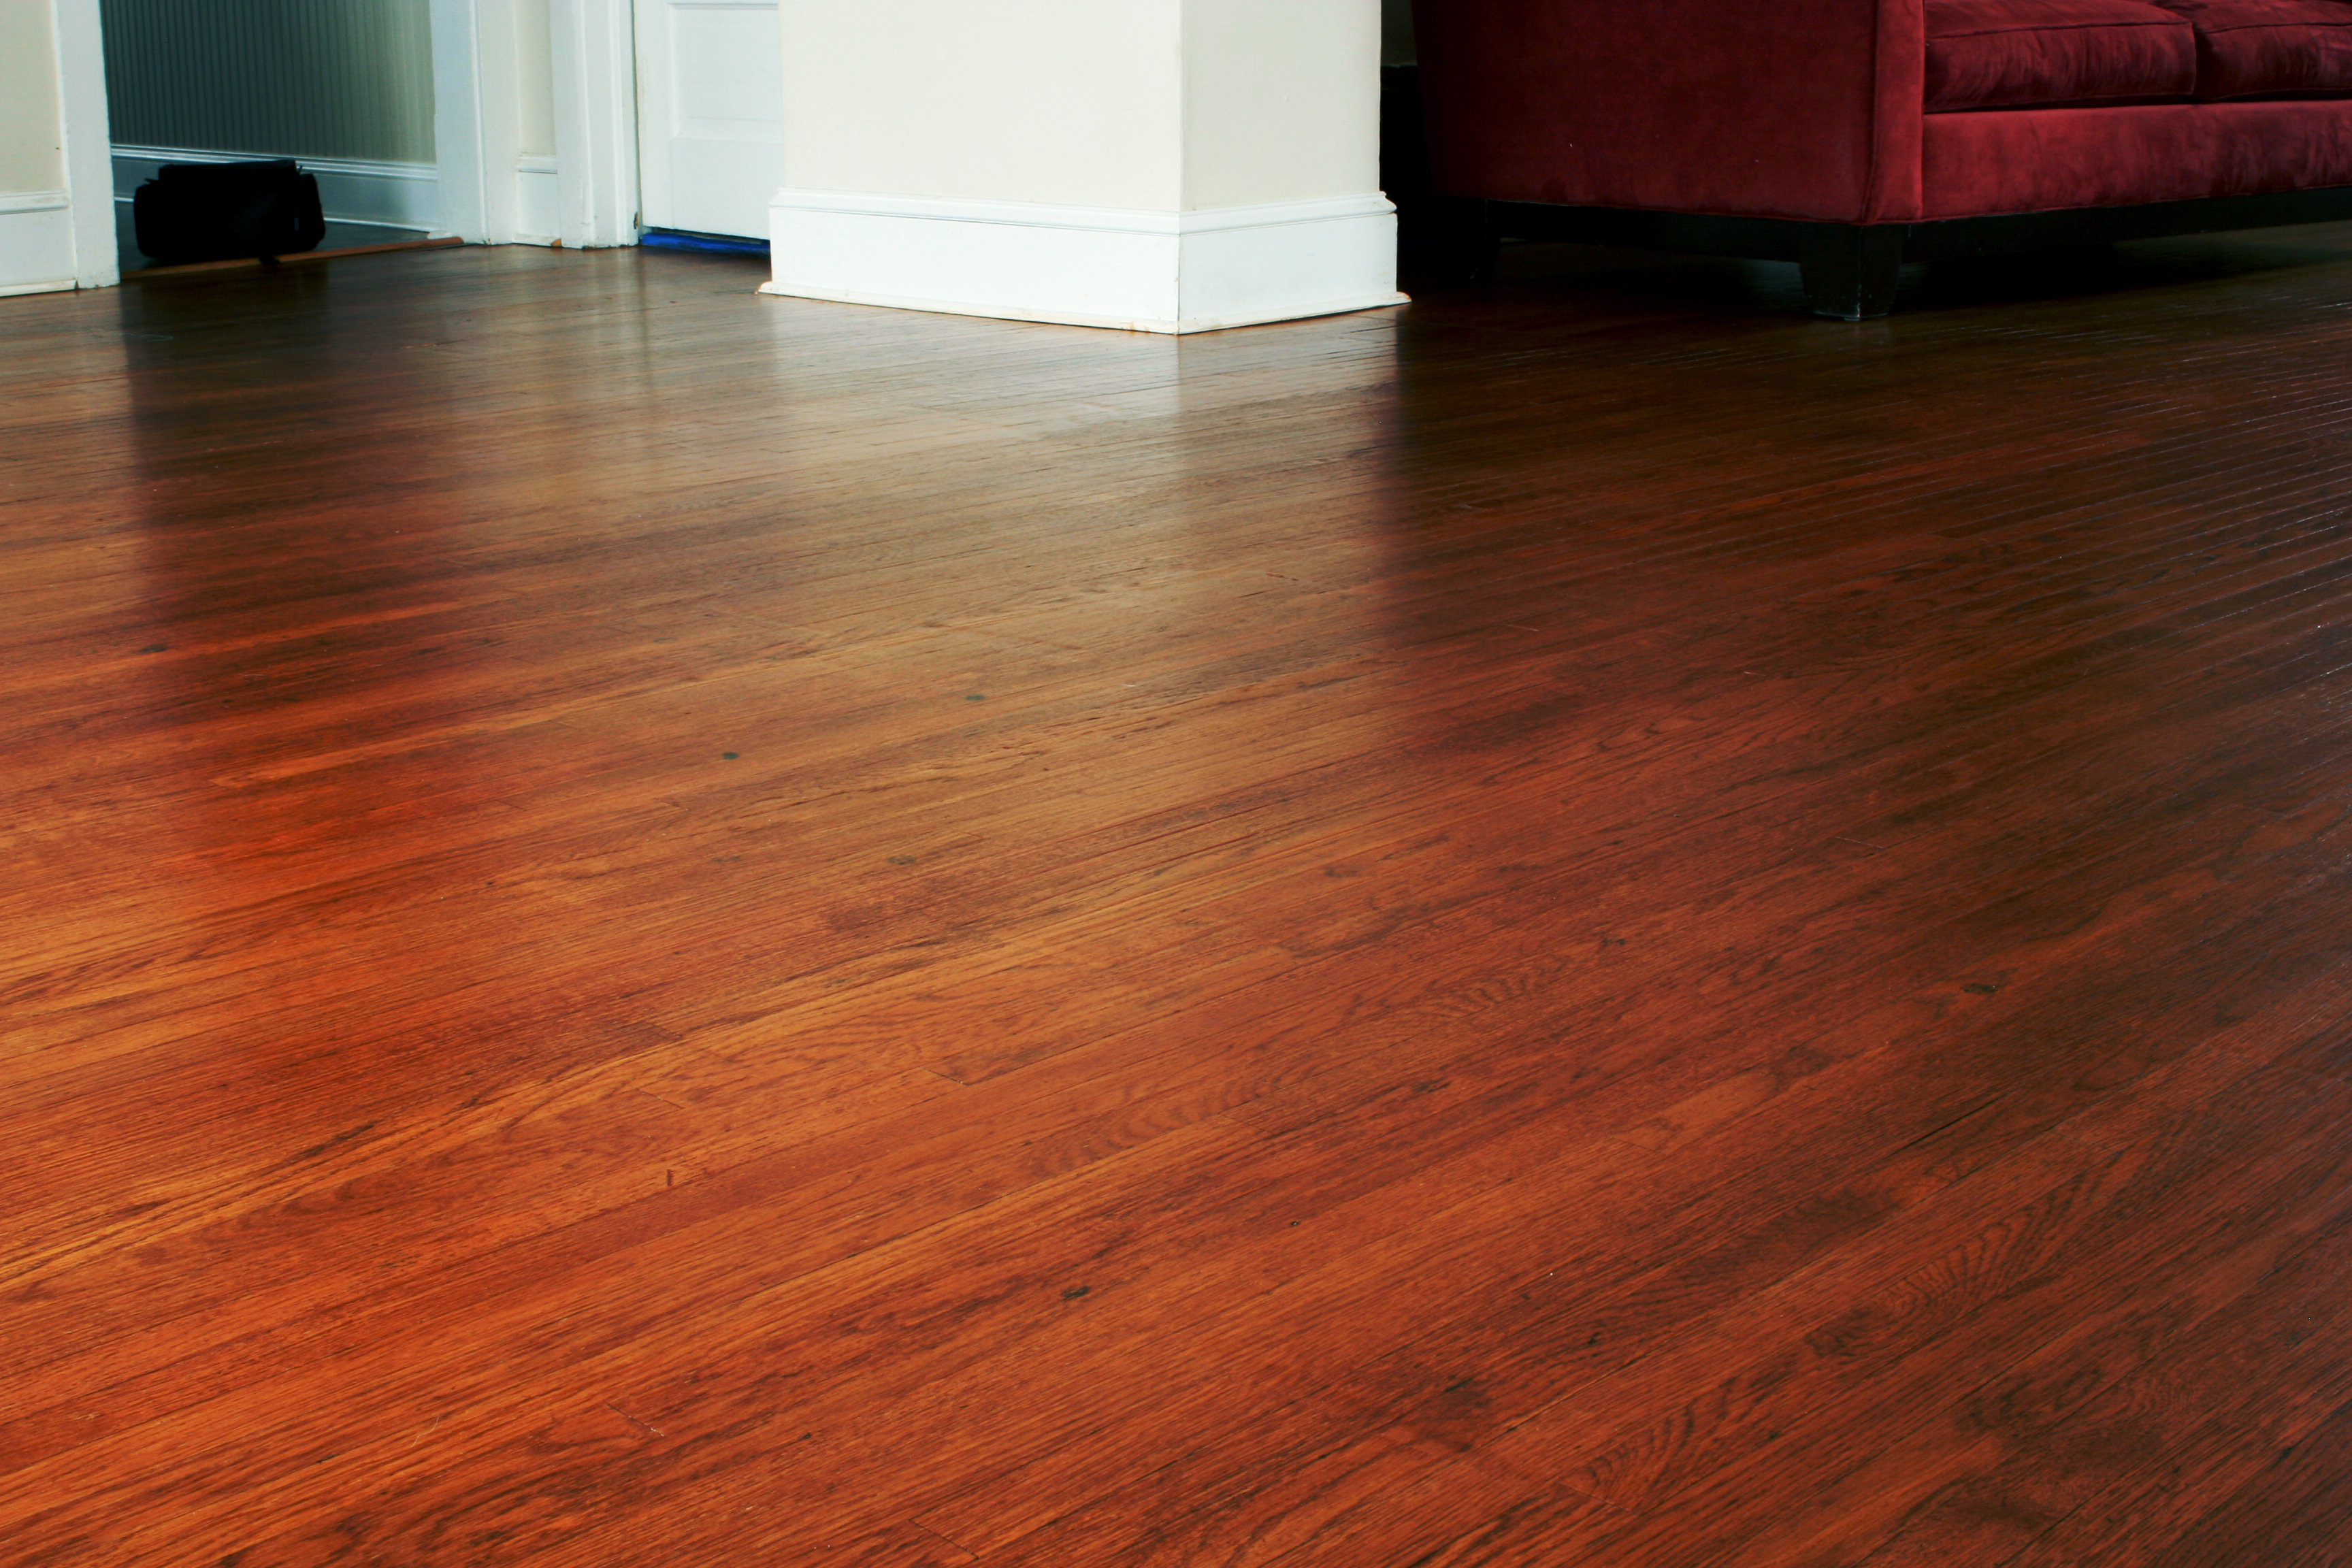 Hardwood Floor Refinishing Portland oregon Of How Much to Refinish Wood Floors Refinish Done In Portland oregon Inside How Much to Refinish Wood Floors How to Diagnose and Repair Sloping Floors Homeadvisor